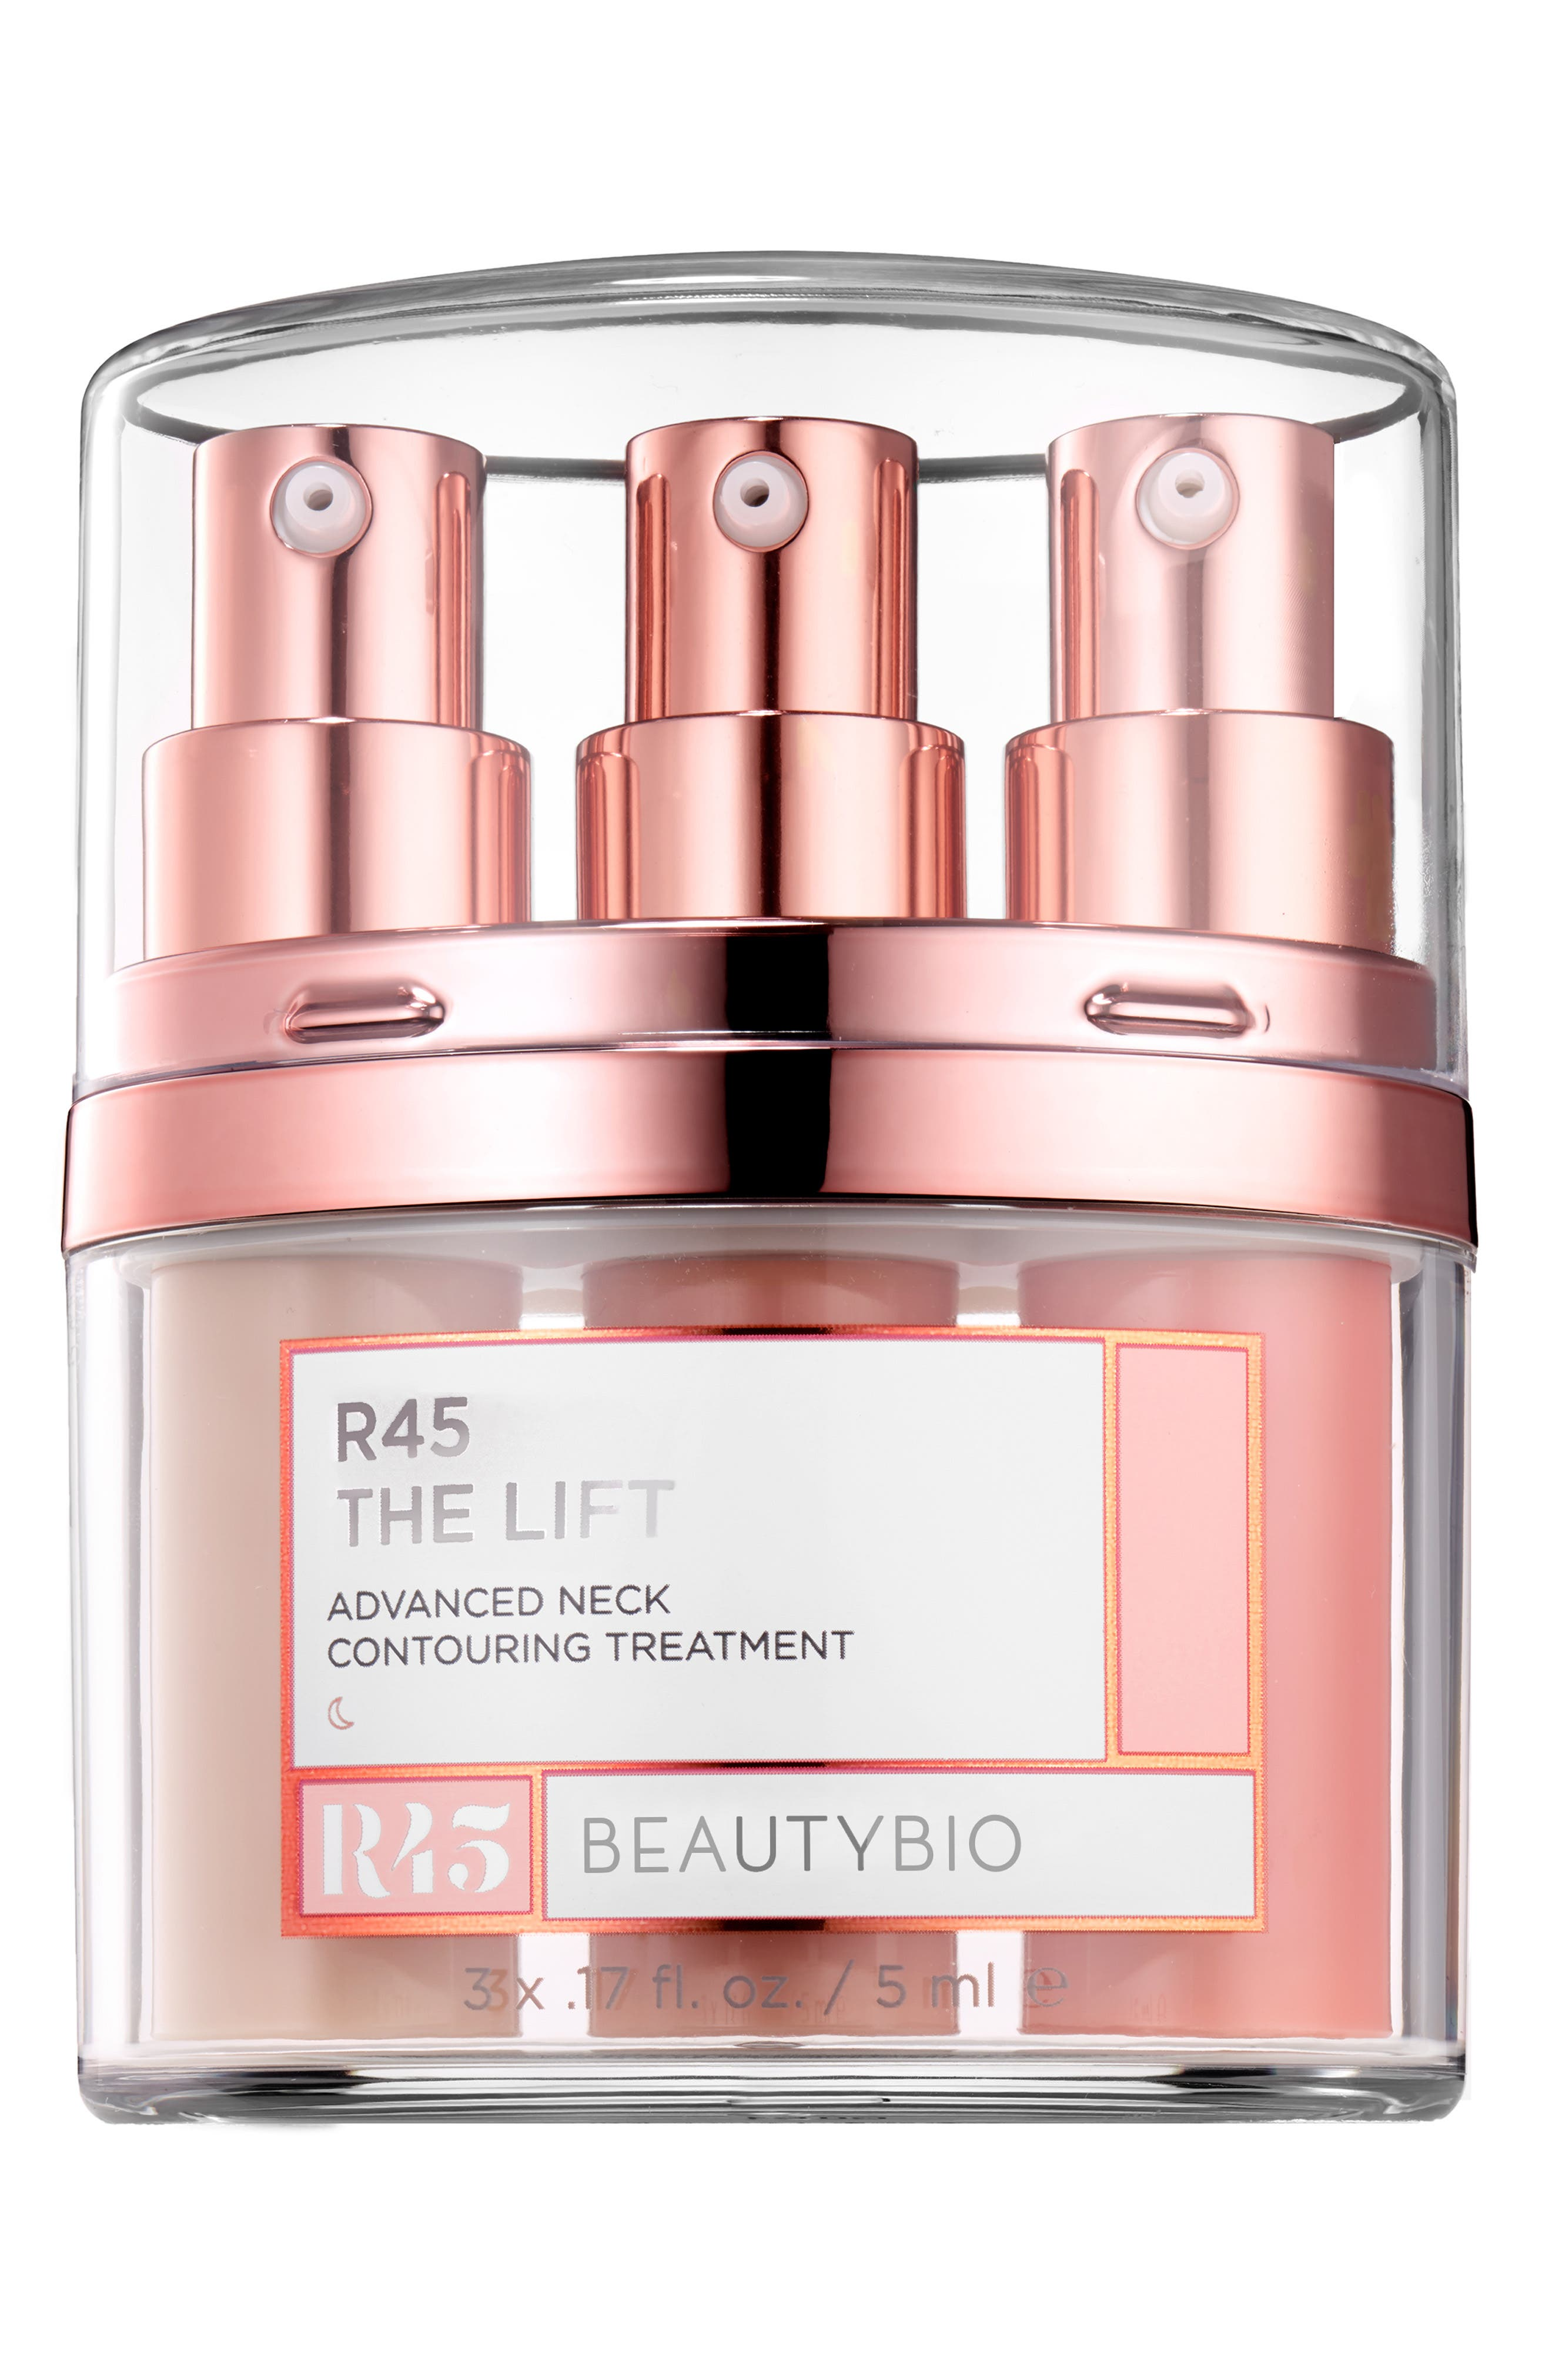 R45 The Lift 3-Phase Advanced Neck Contouring Treatment (Nordstrom Exclusive)